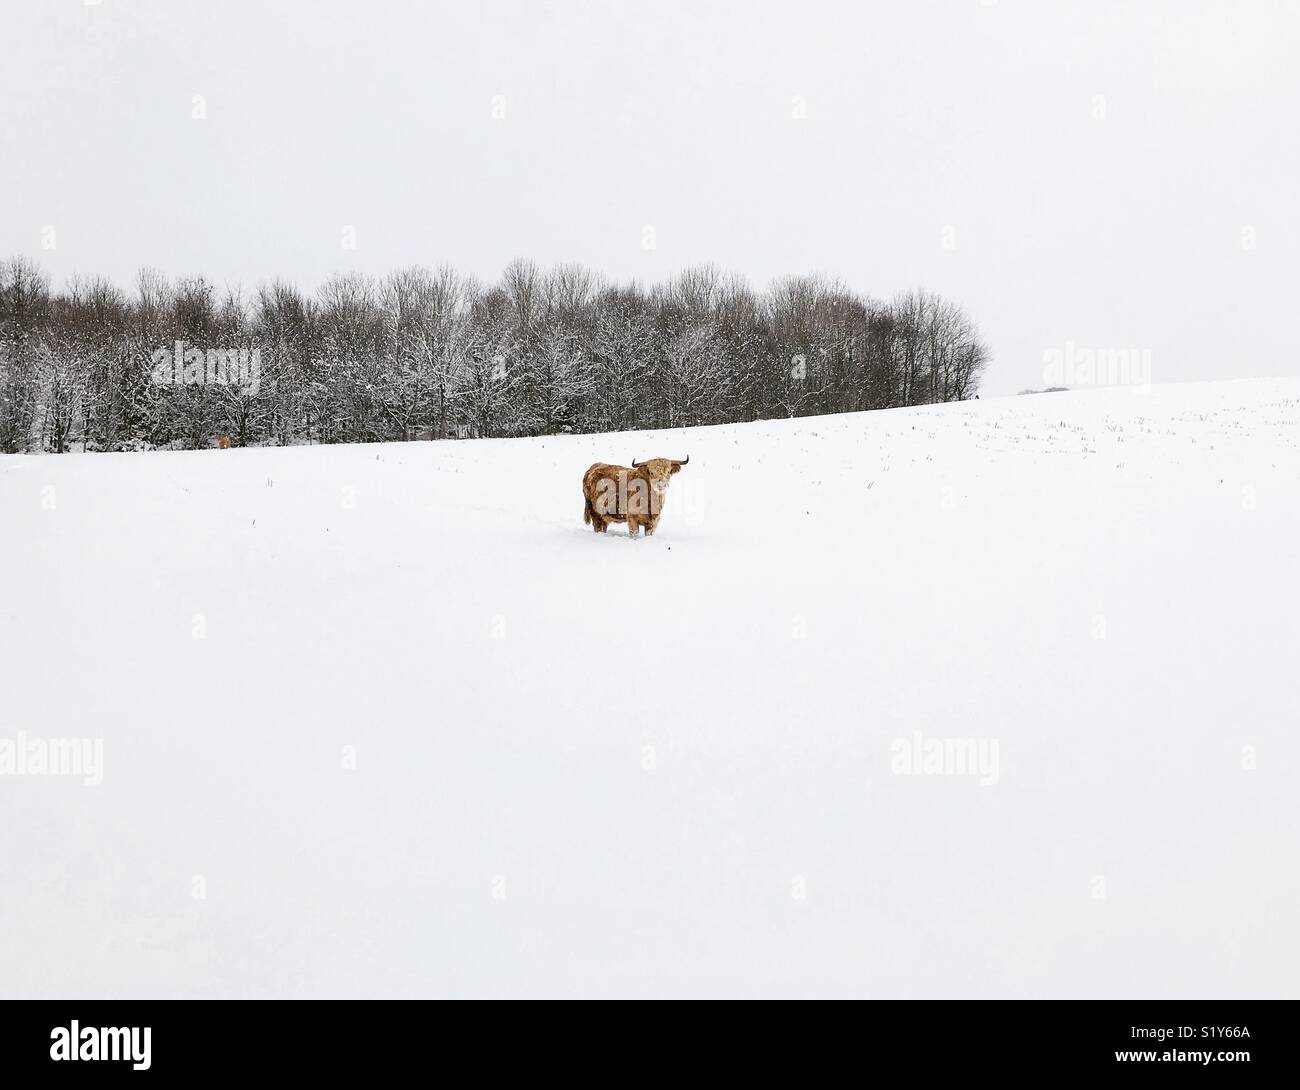 Scottish Highland Cow in snow - Stock Image